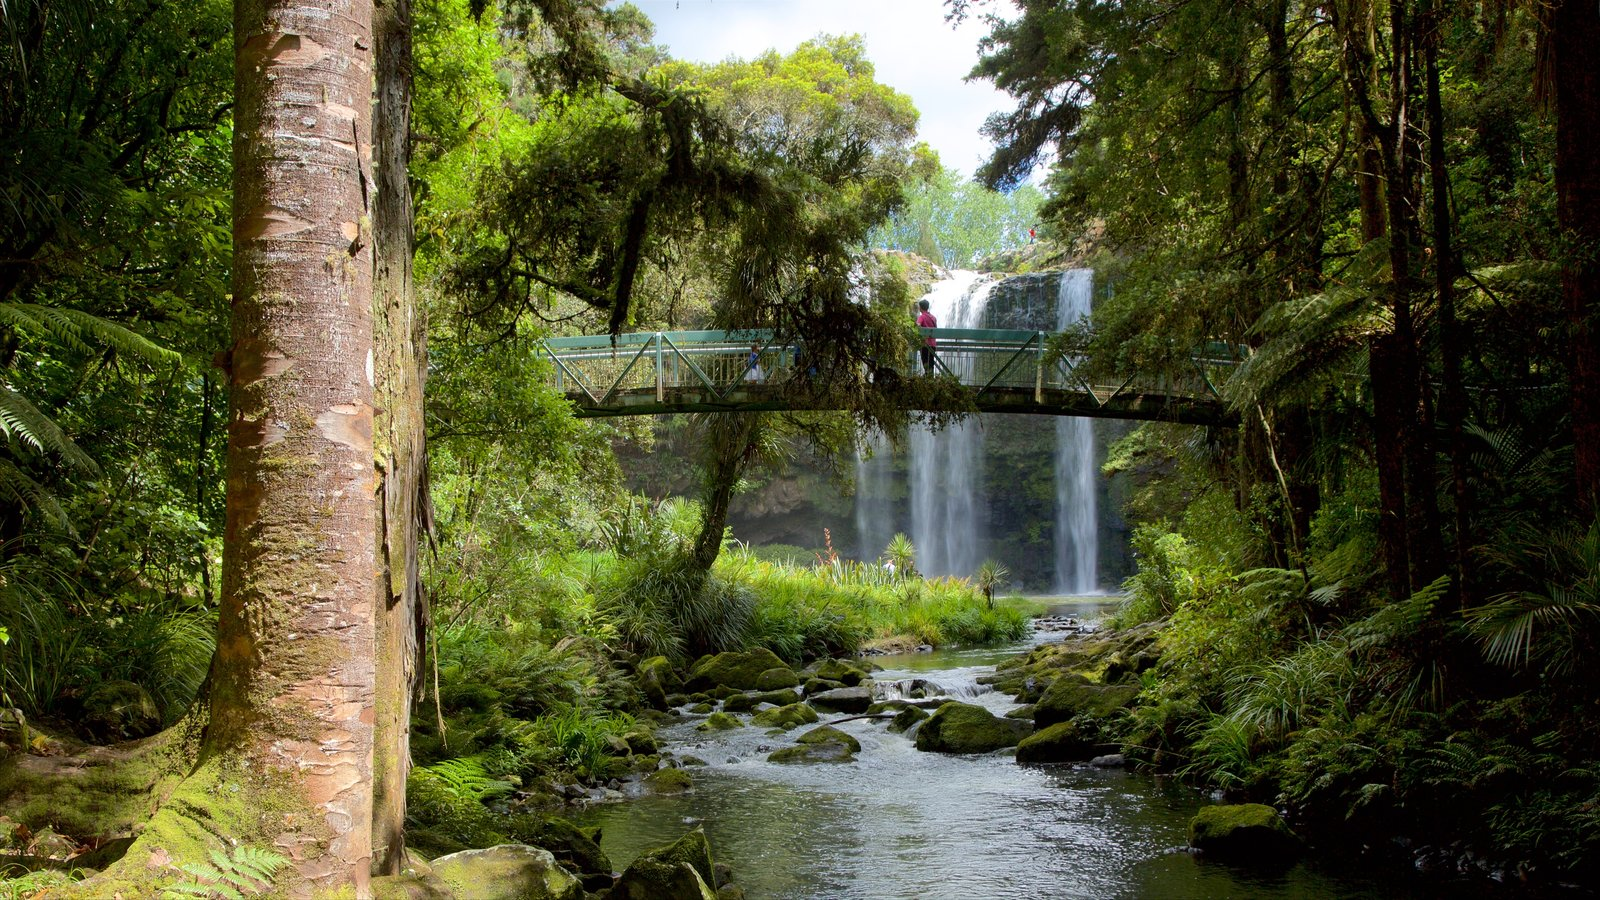 Whangarei Falls featuring a river or creek, a bridge and forest scenes